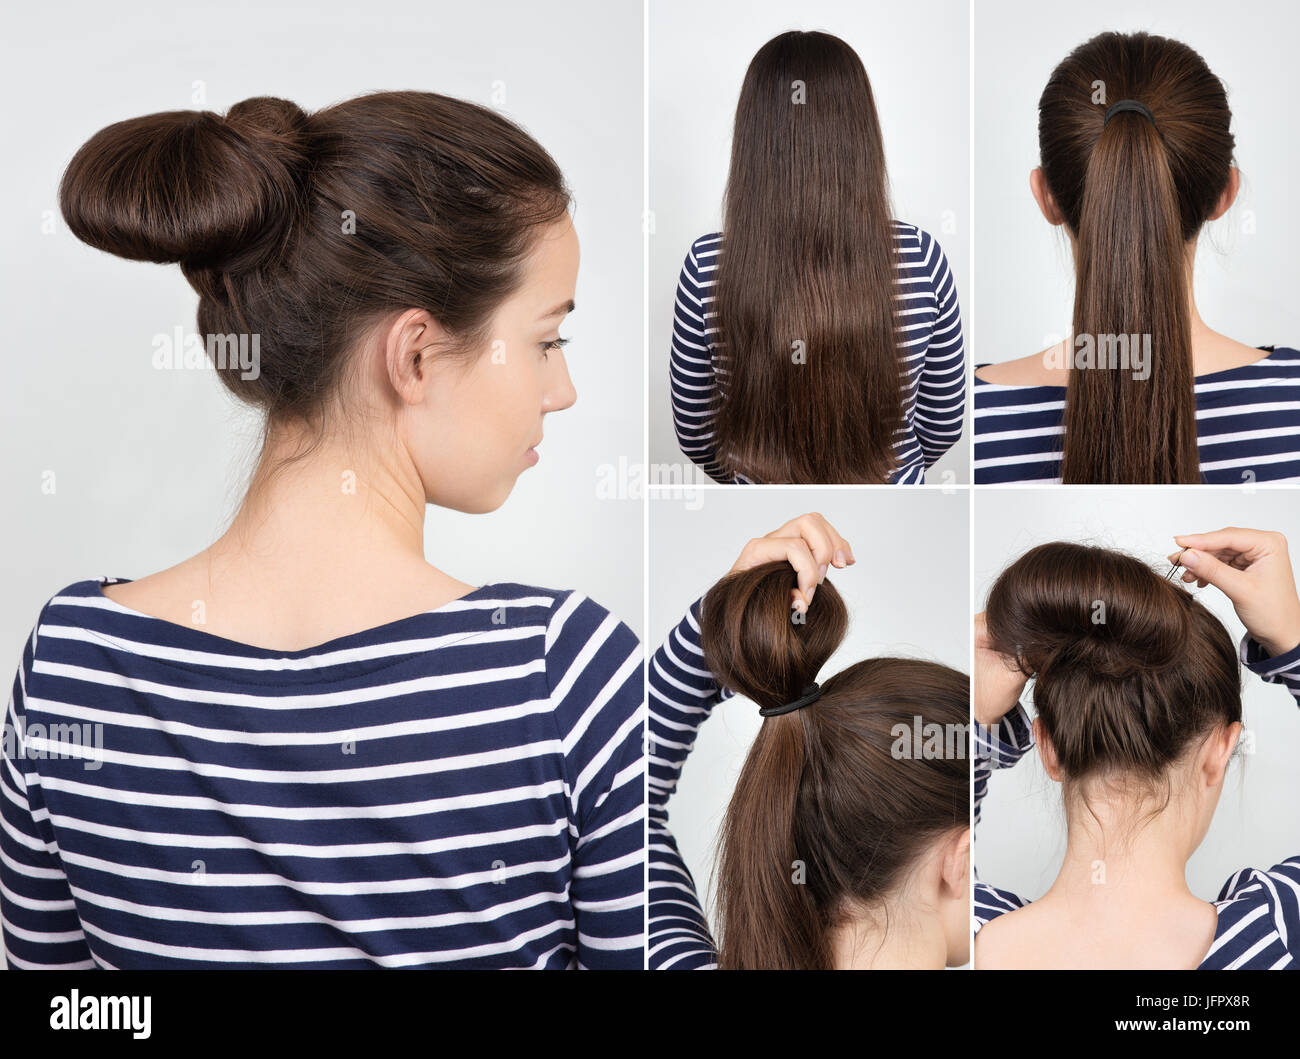 Easy Hairstyle Twisted Bun For Self Casual Hairstyle Tutorial Step